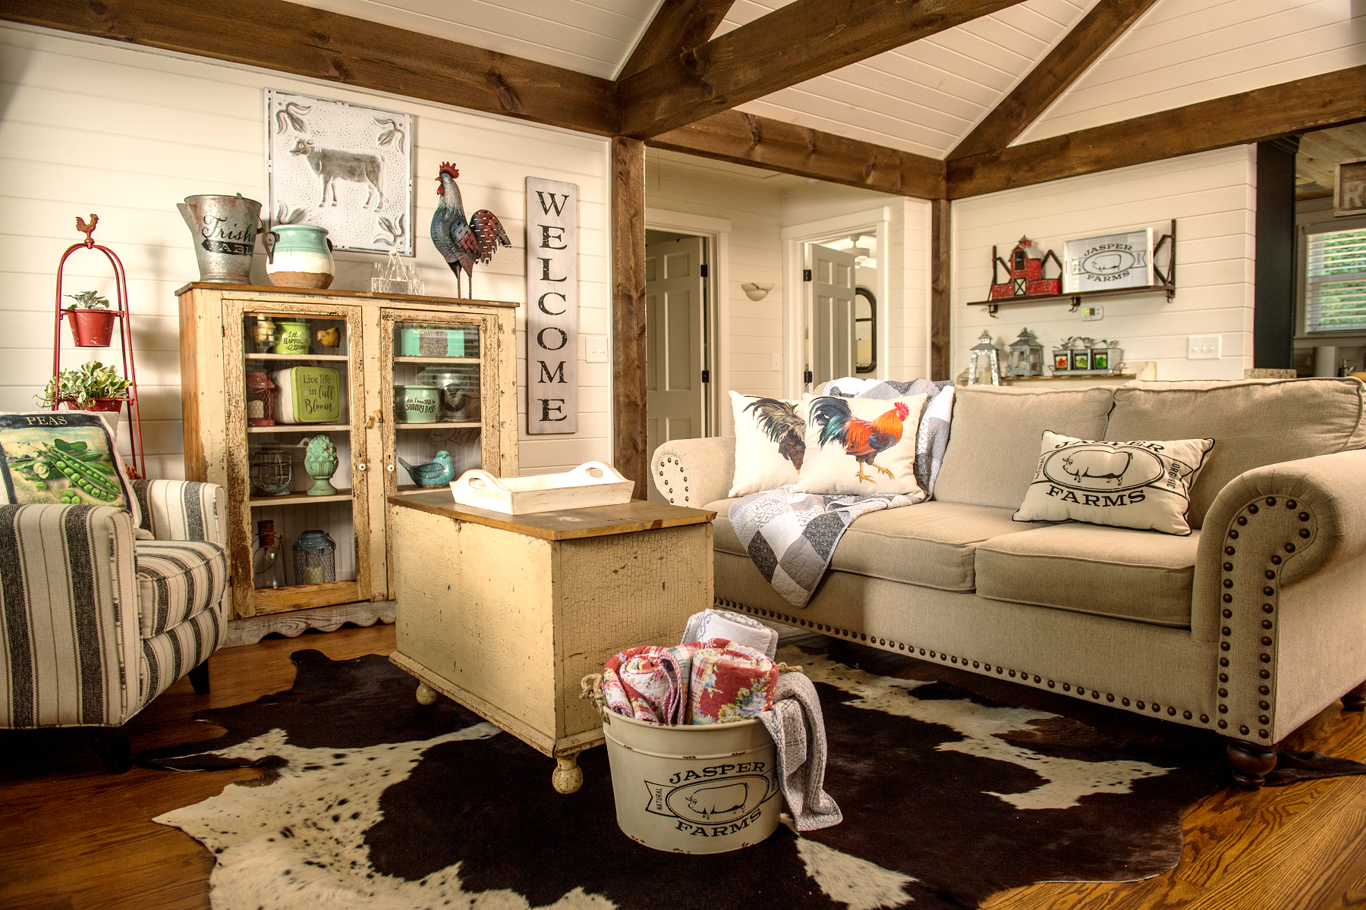 Eclectic farmhouse style featuring red shed from tsc trisha